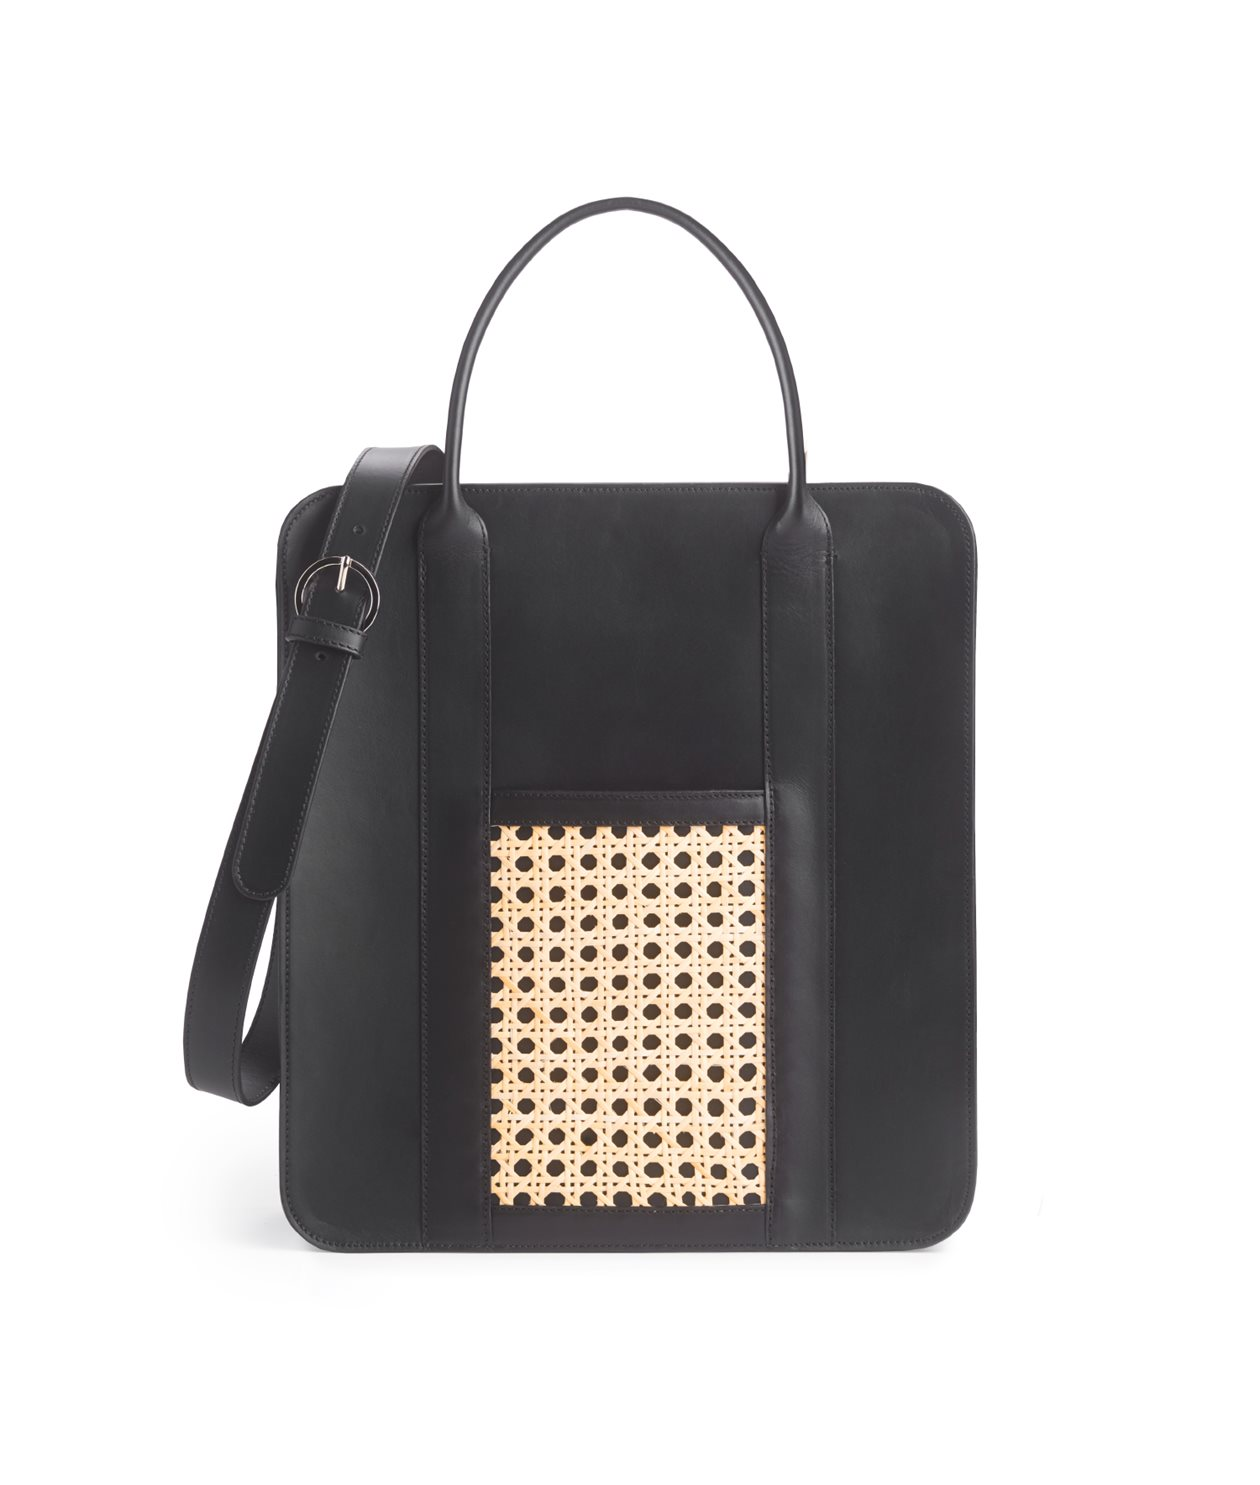 Palmgrens - EO Tote Bag Svart - Genuine handcrafted leather since 1896 466c42643997c